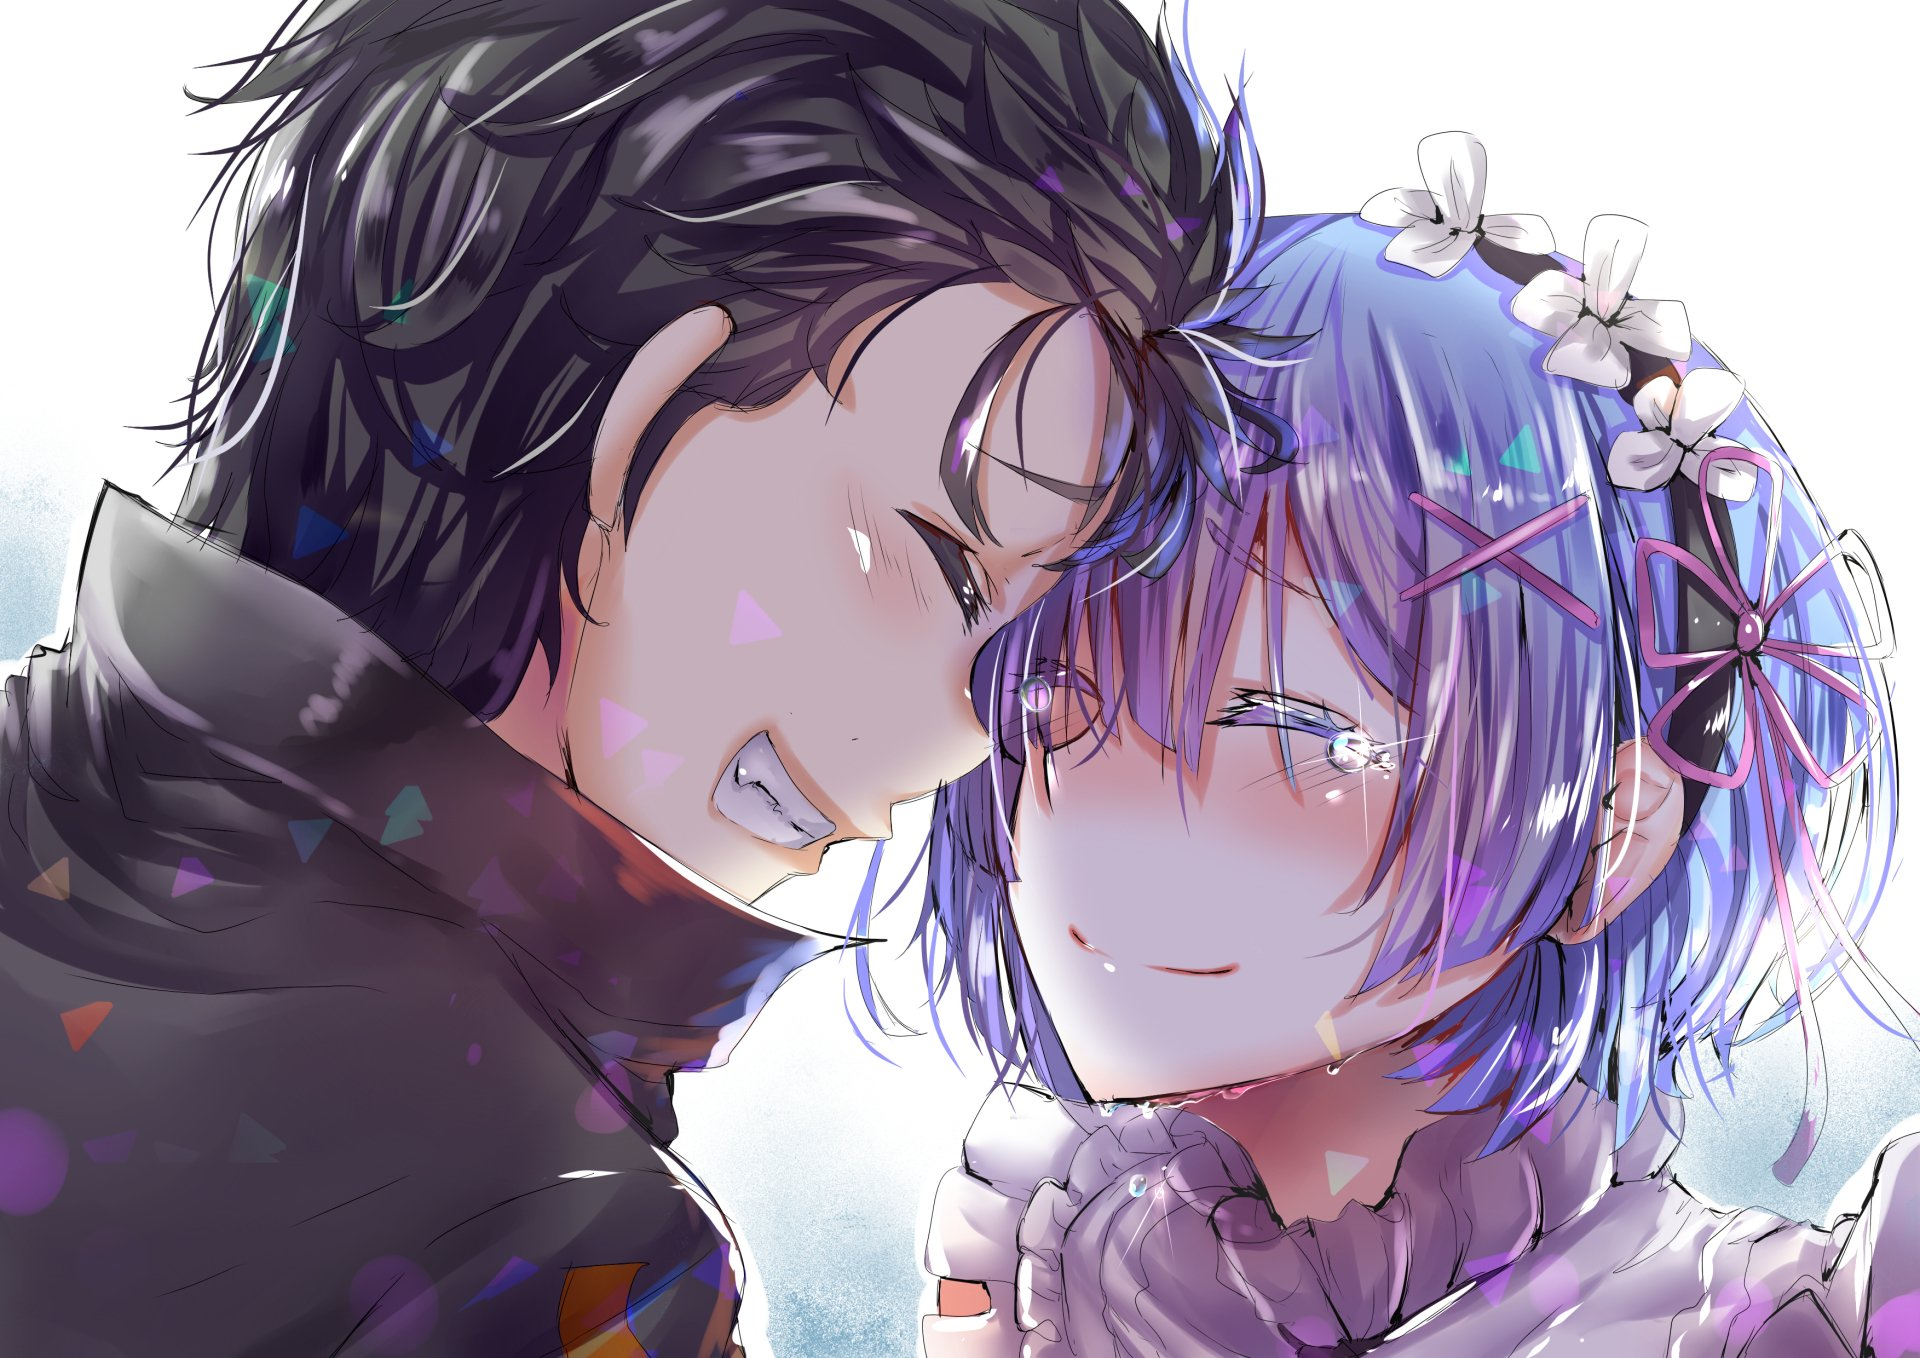 Anime - Re:ZERO -Starting Life in Another World-  Rem (Re:ZERO) Subaru Natsuki Re:Zero Wallpaper